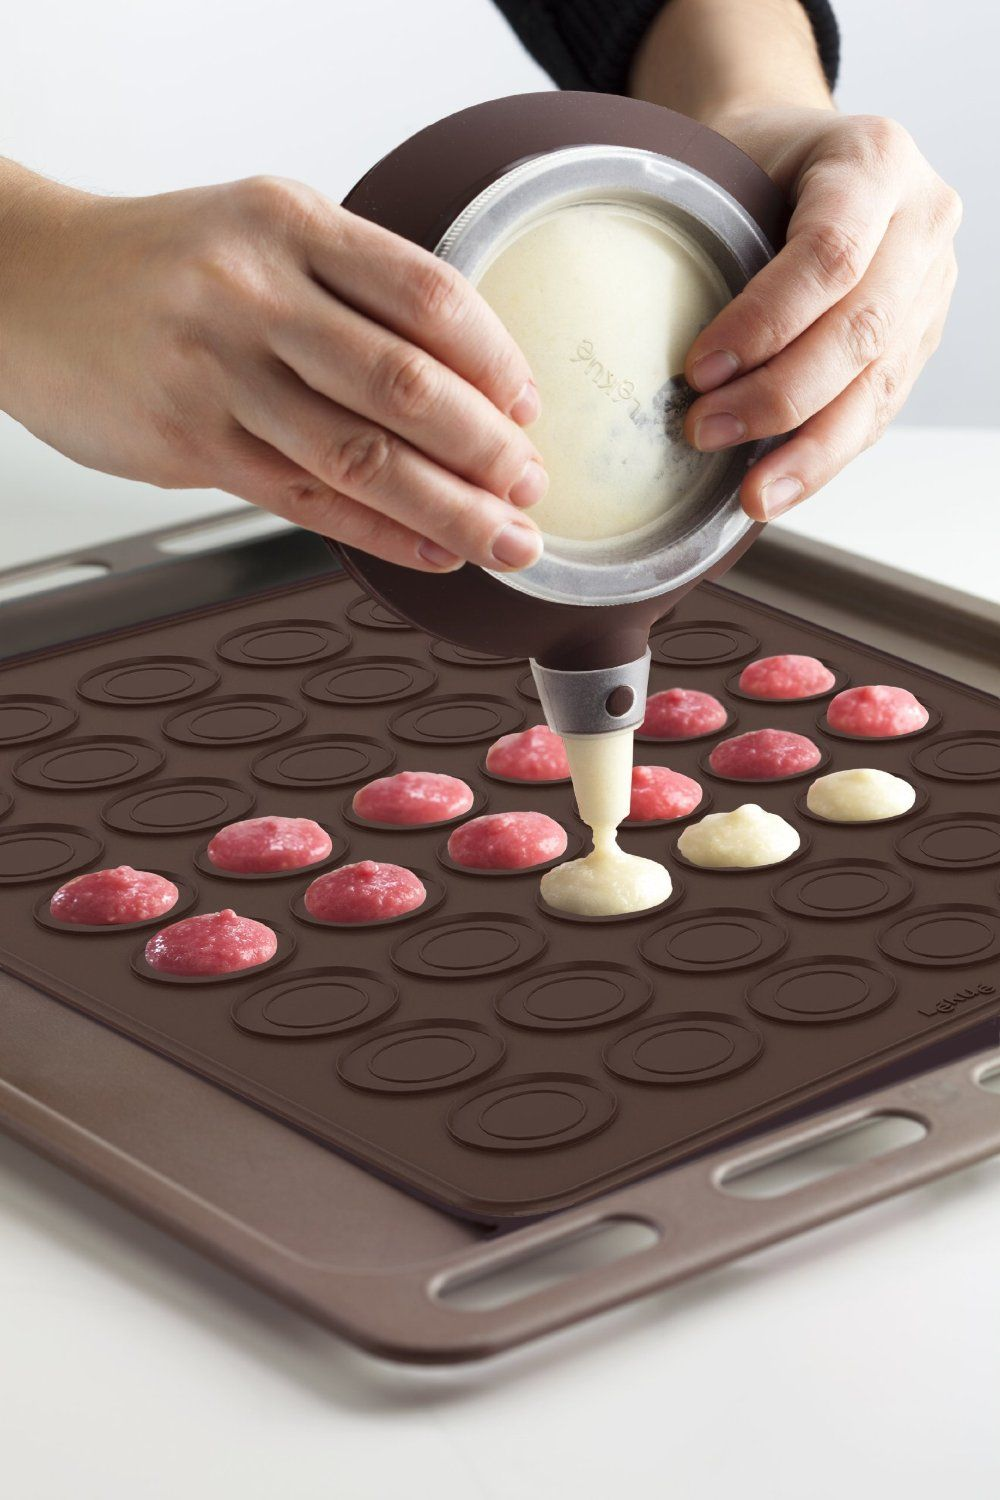 7737c0eba7a5 Amazon.com  Lekue Macaron Kit with Decomax Pen and Baking Sheet  Kitchen    Dining